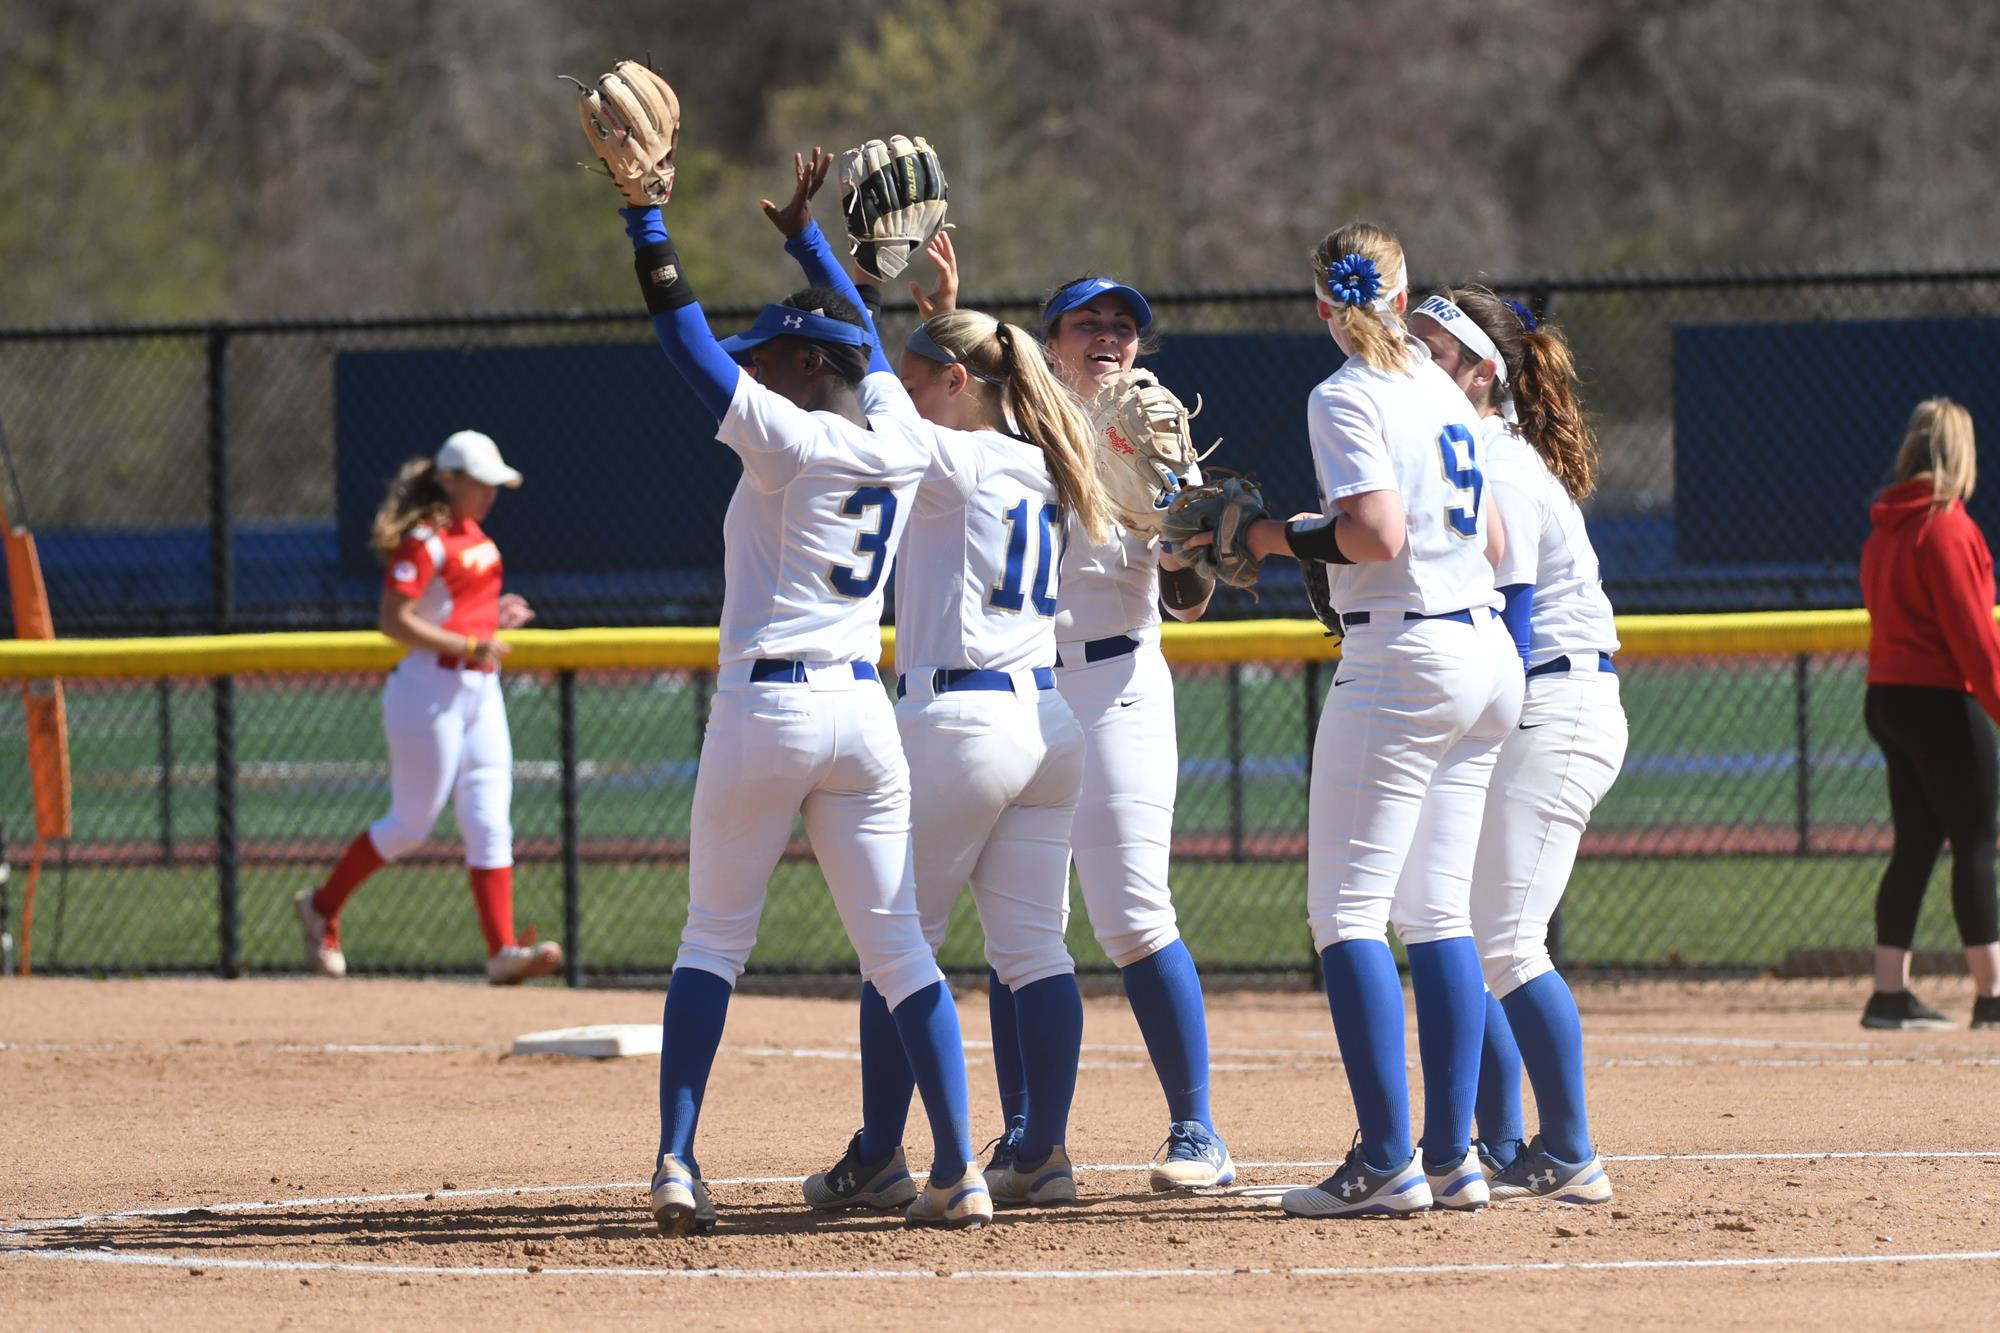 Georgian Court Predicted Third Overall in 2019 CACC Softball